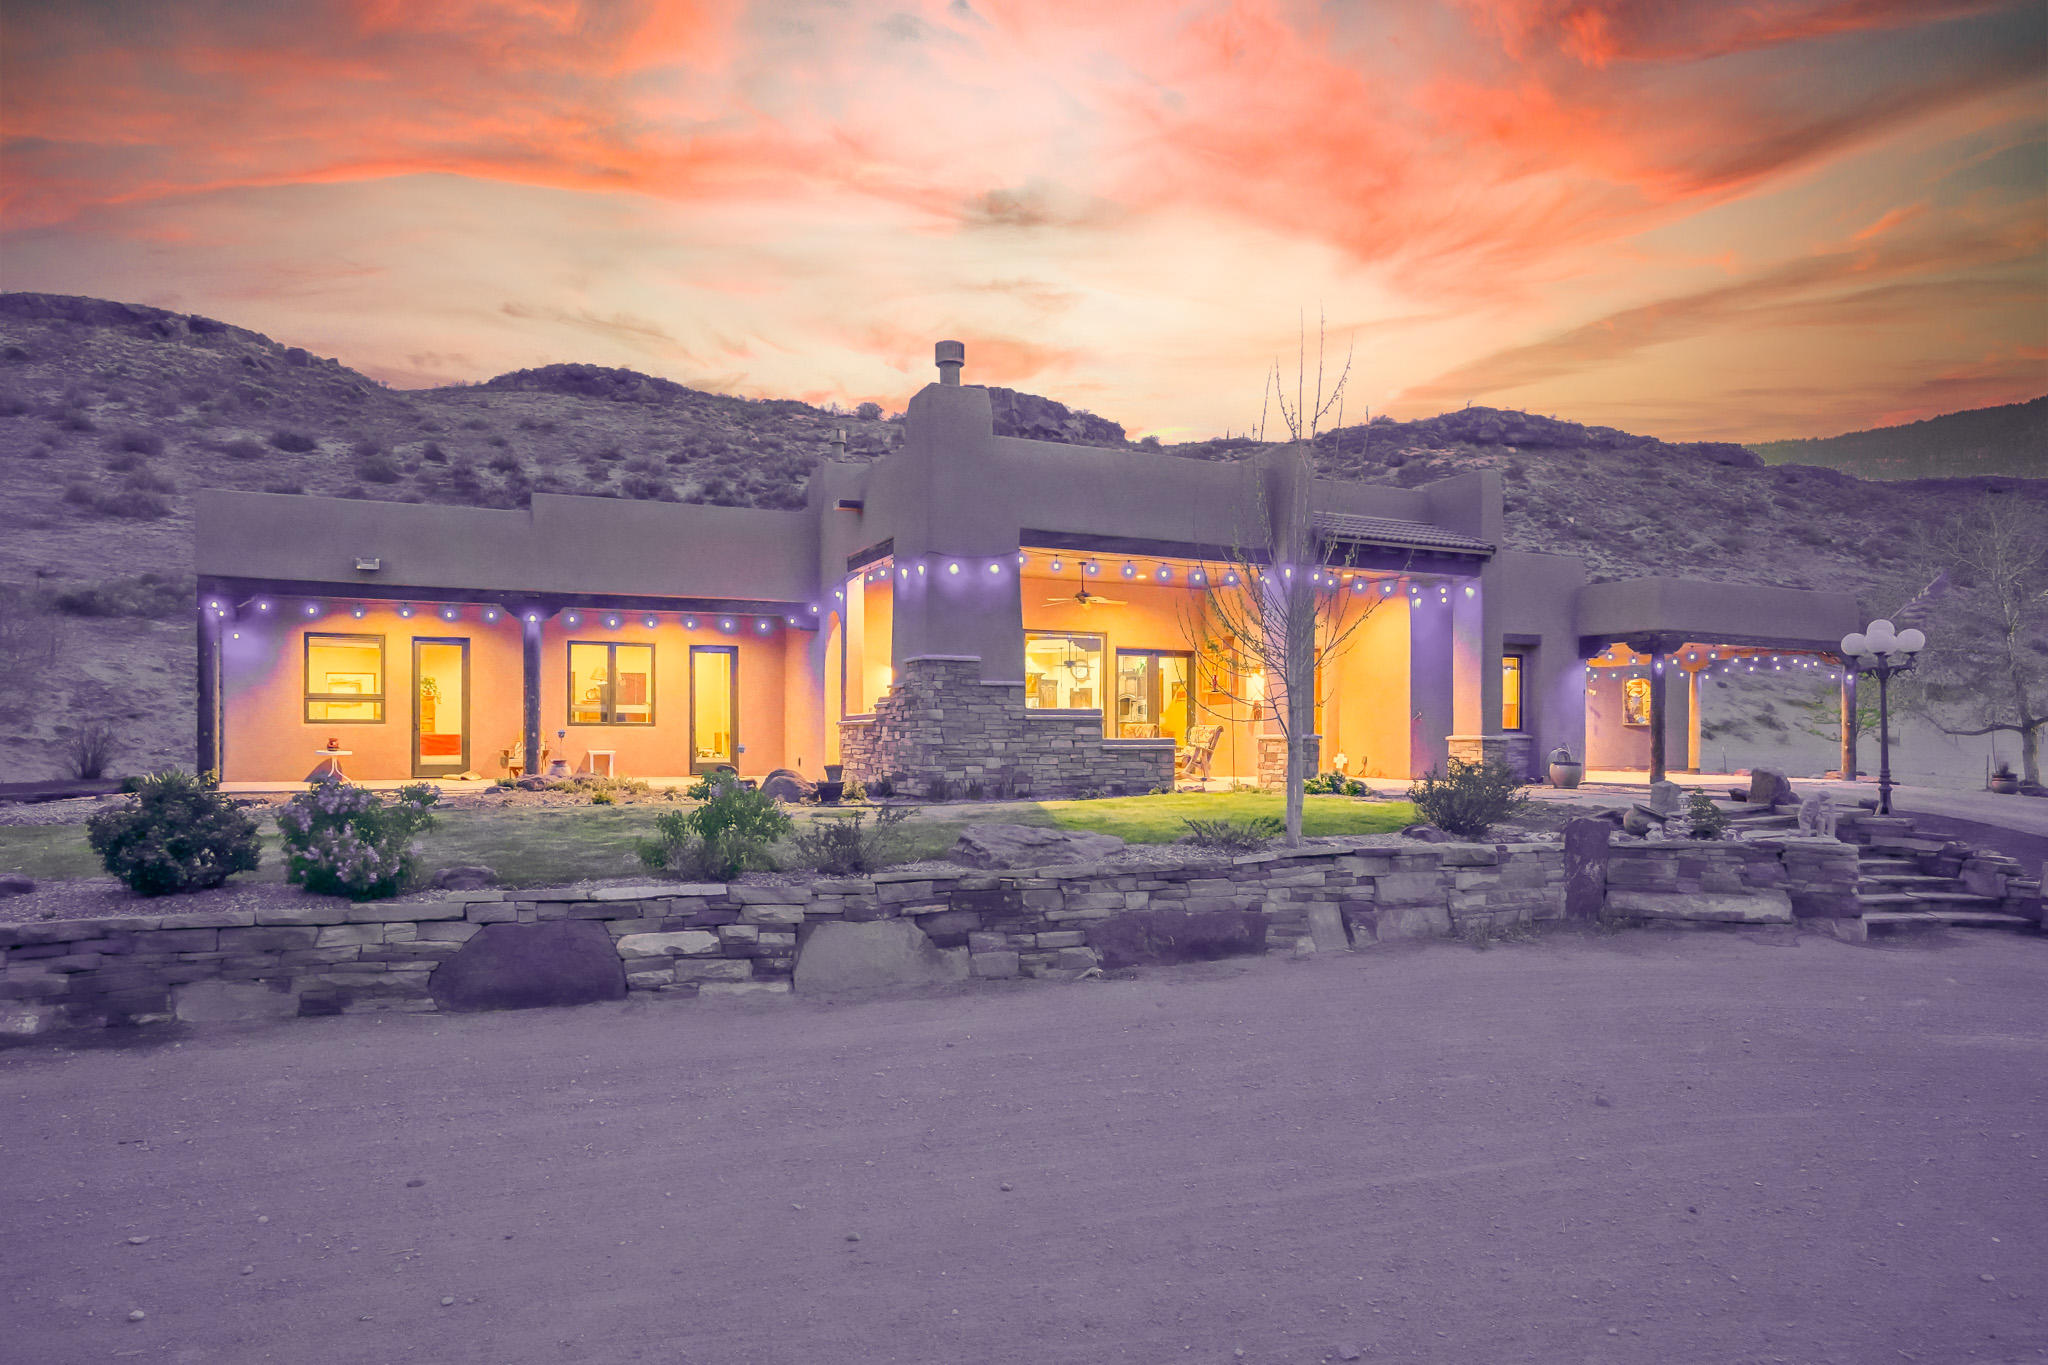 Beautiful setting on this 8 acre estate.   Custom single story Pueblo style home with great views of the Sandia Mountains.  Open floor plan and abundant sunlight throughout.  Radiant heat, Wonderful porch to enjoy the sunset.High quality finishes and great design make this gem a warm and inviting  retreat.  The kitchen is a chef's delight and features handcrafted alder cabinetry, high end stainless steel appliances, and granite counters. Ditch irrigated fully fenced pasture, a 2 stall barn with hay storage and a tack room complete this peaceful retreat.